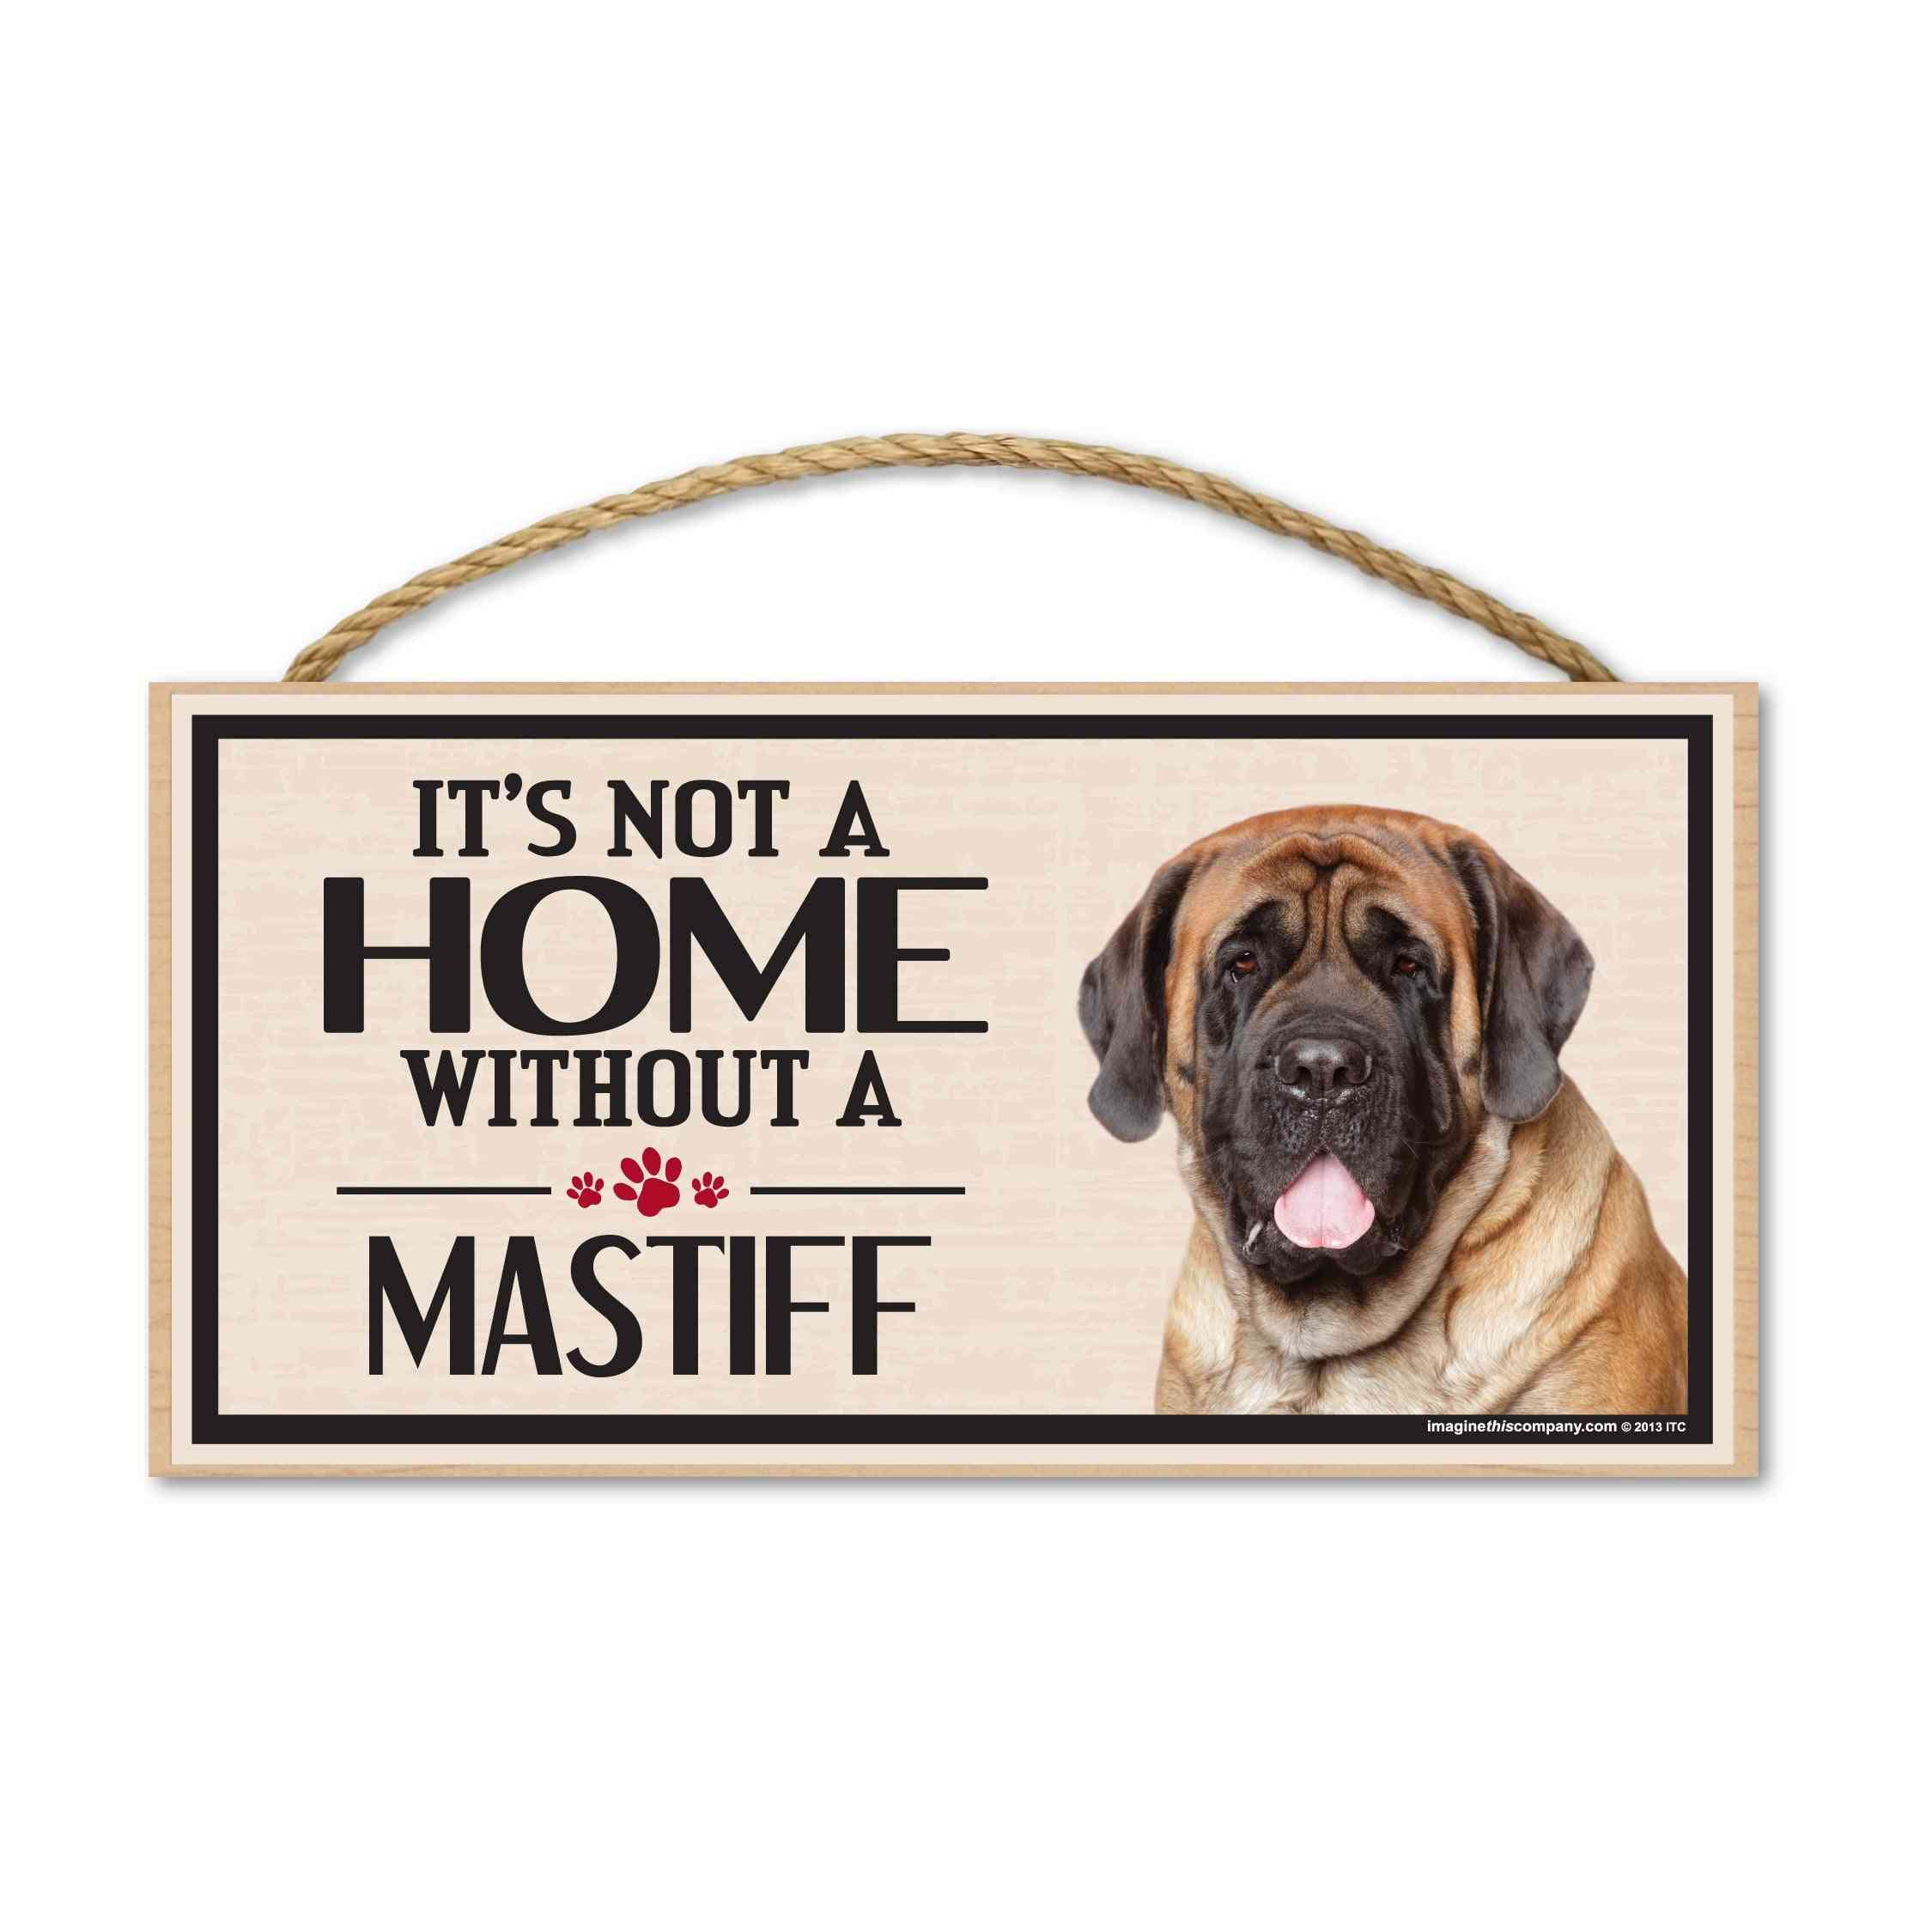 Sign, Wood, It's Not A Home Without A Mastiff, 10